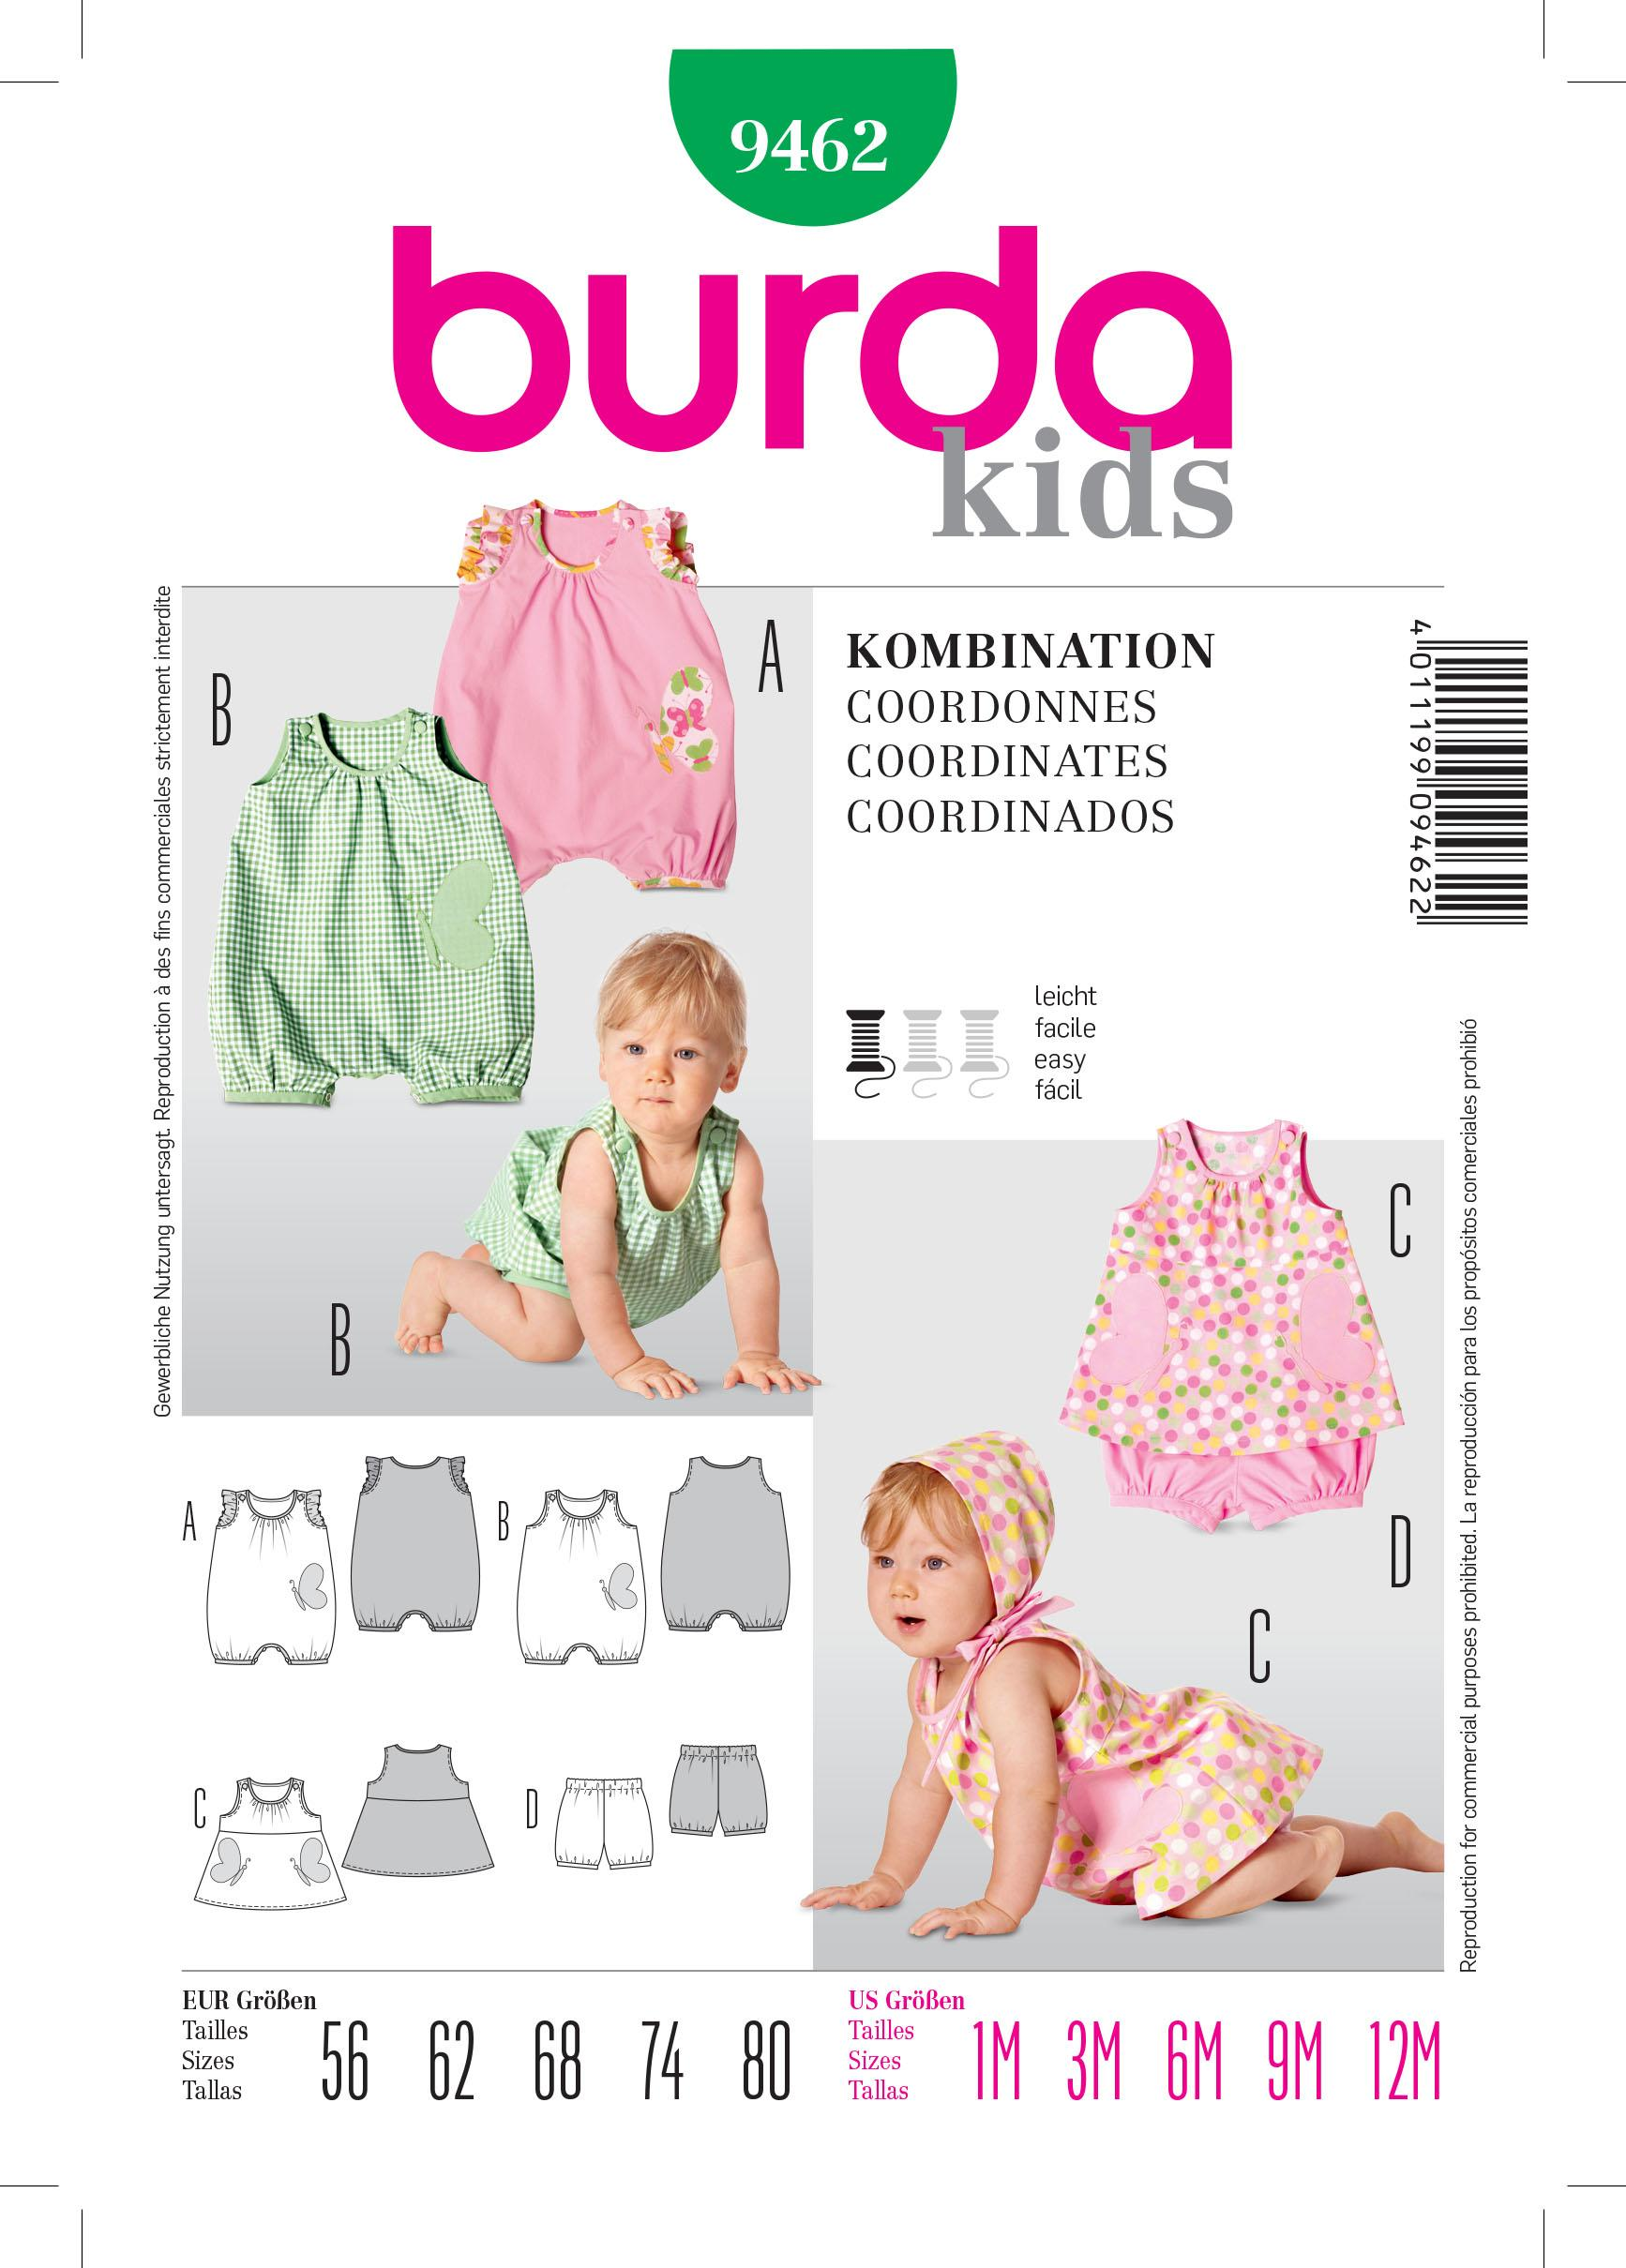 Burda B9462 Kids Coordinates Sewing Pattern